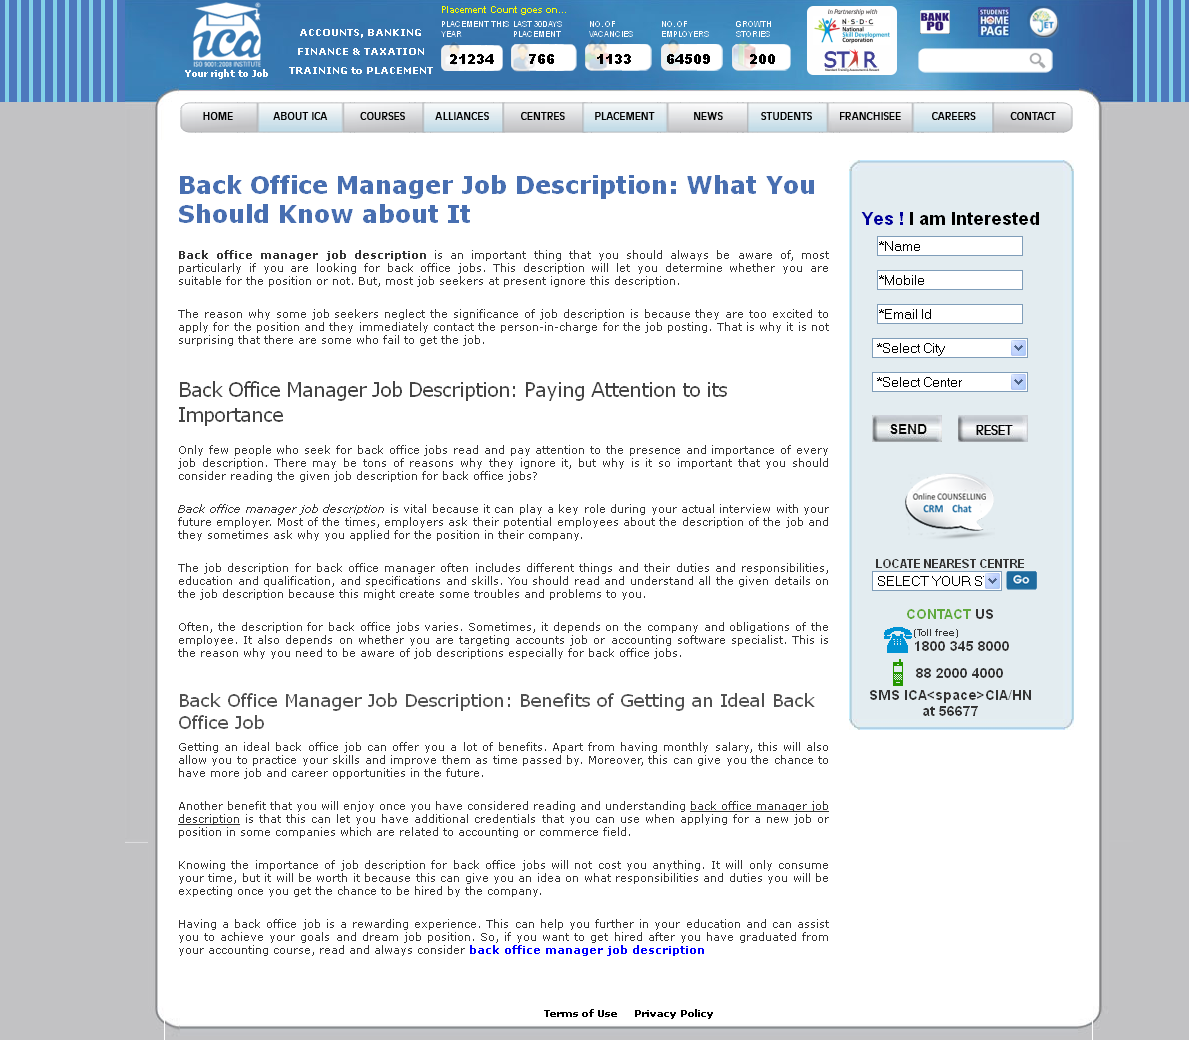 Back office manager job description is an important